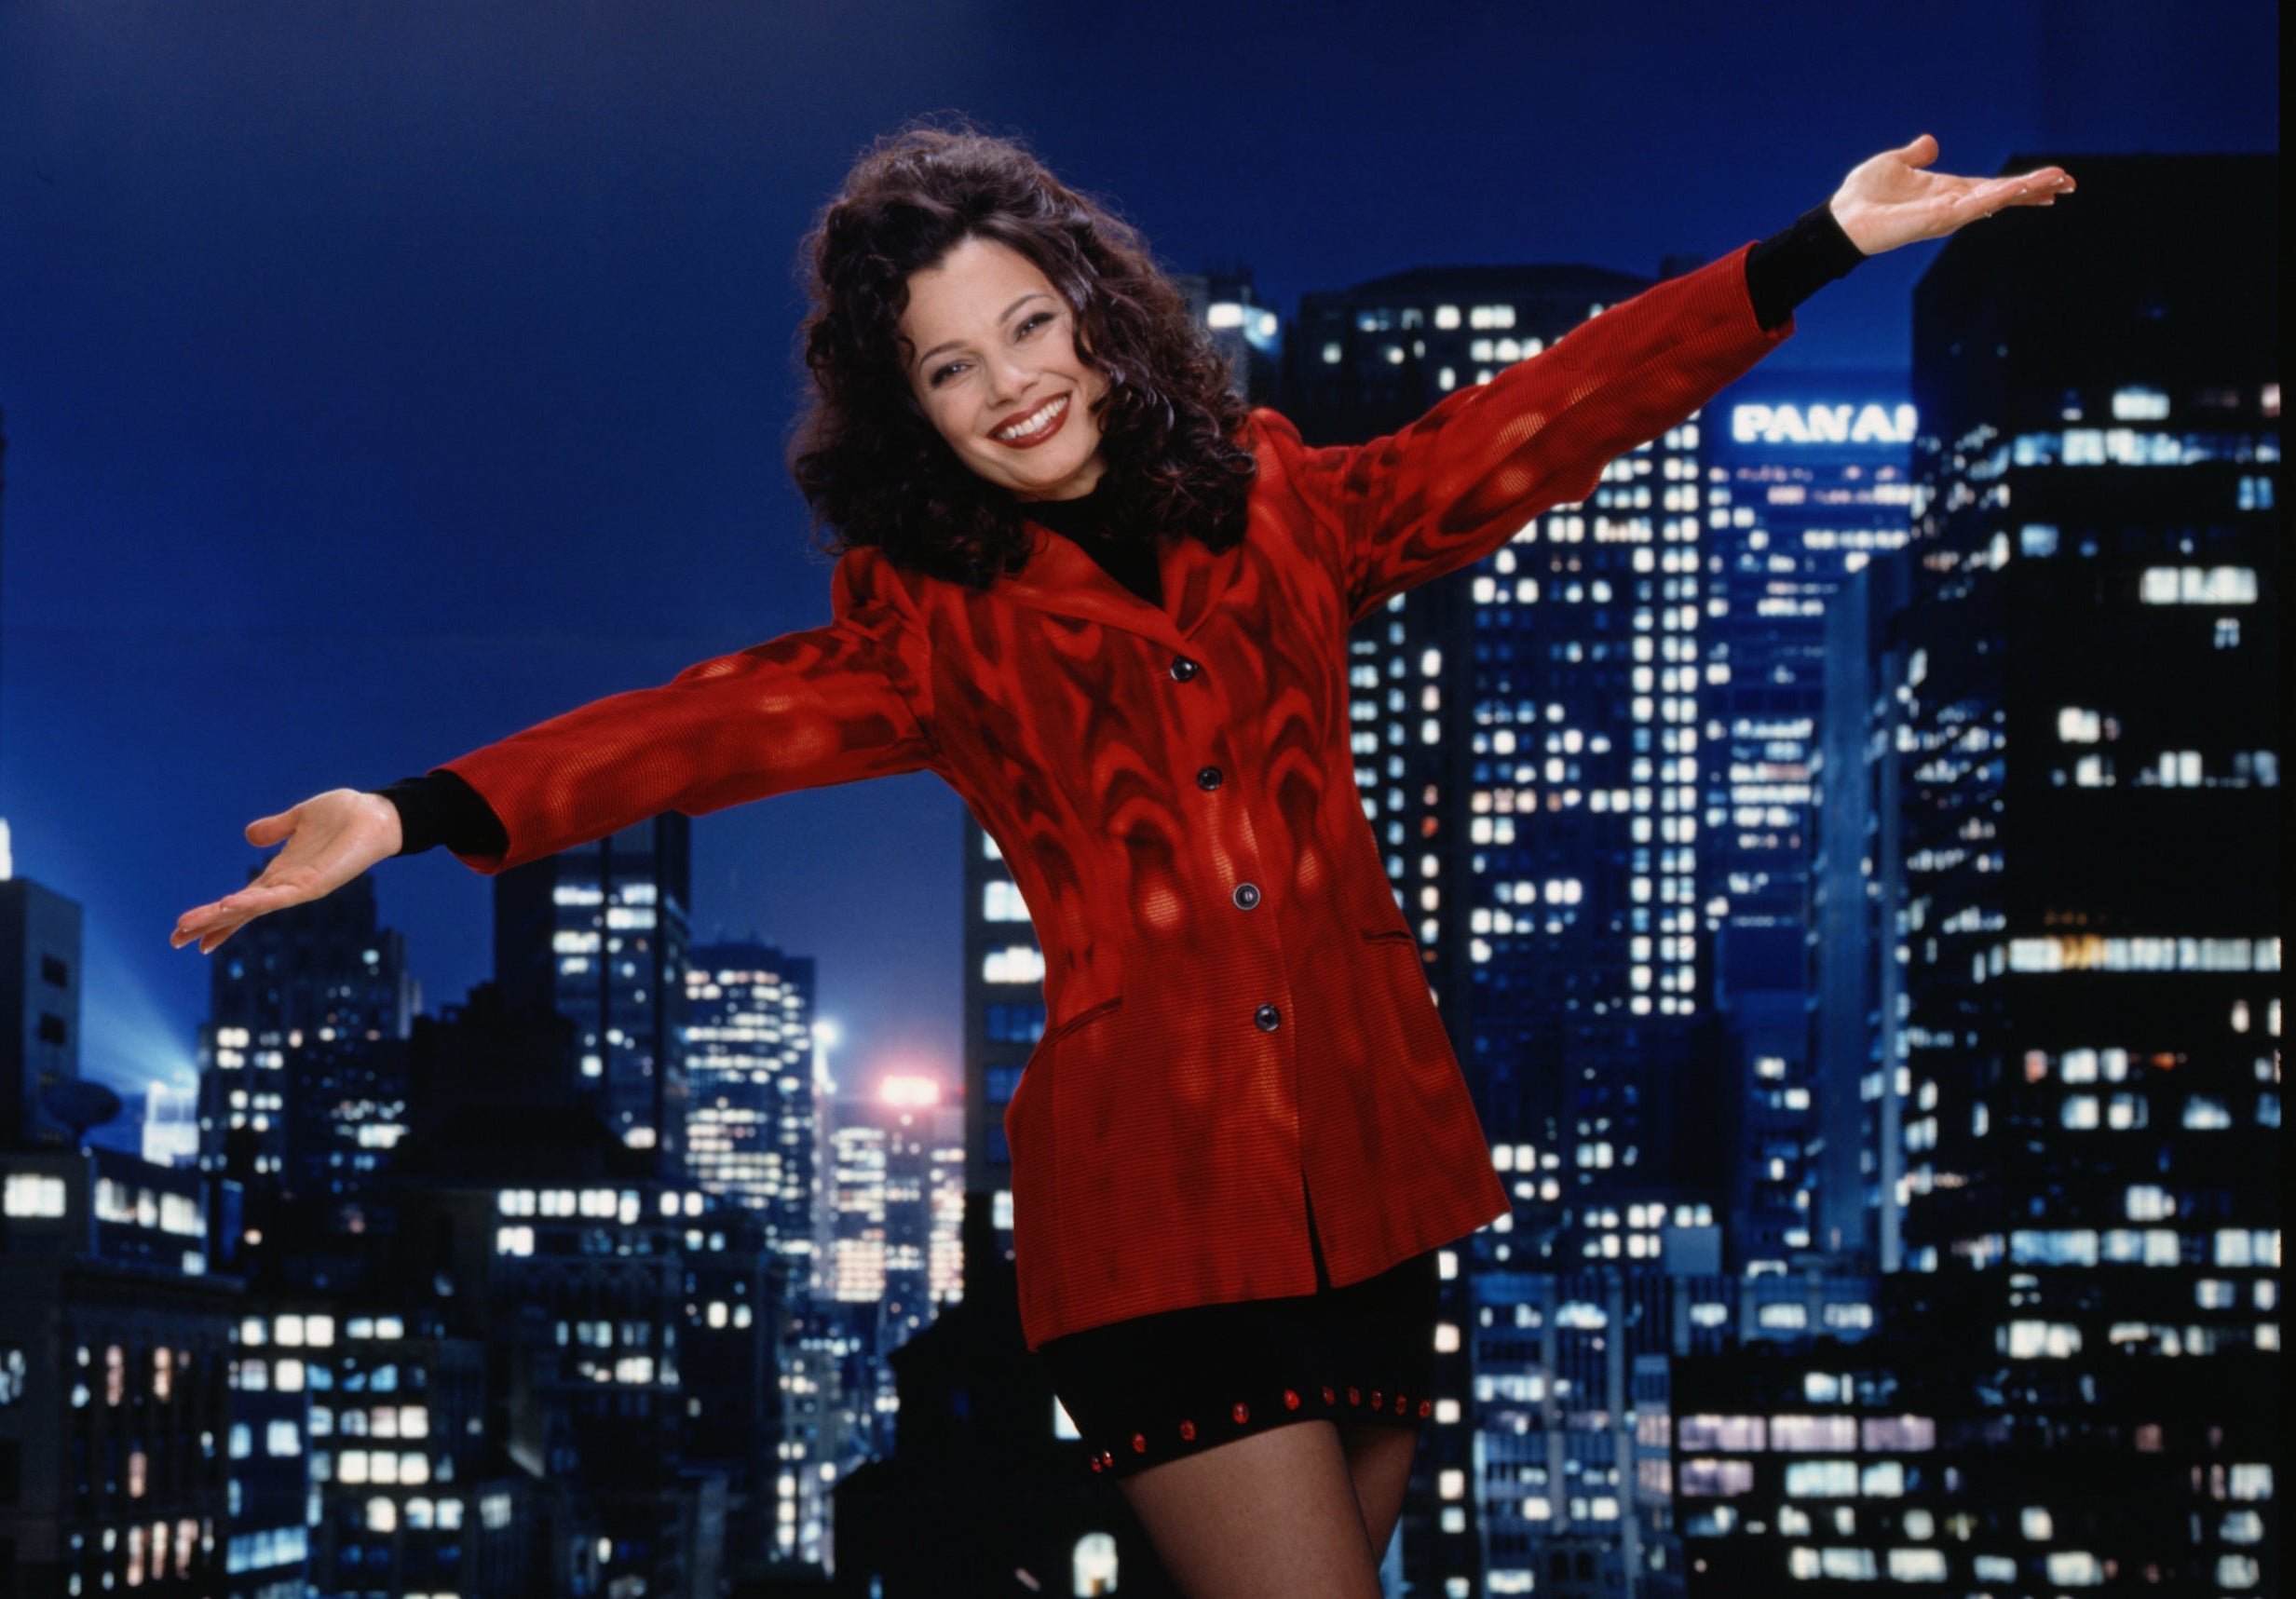 Fran holds her arms out wide in front of a New York City backdrop